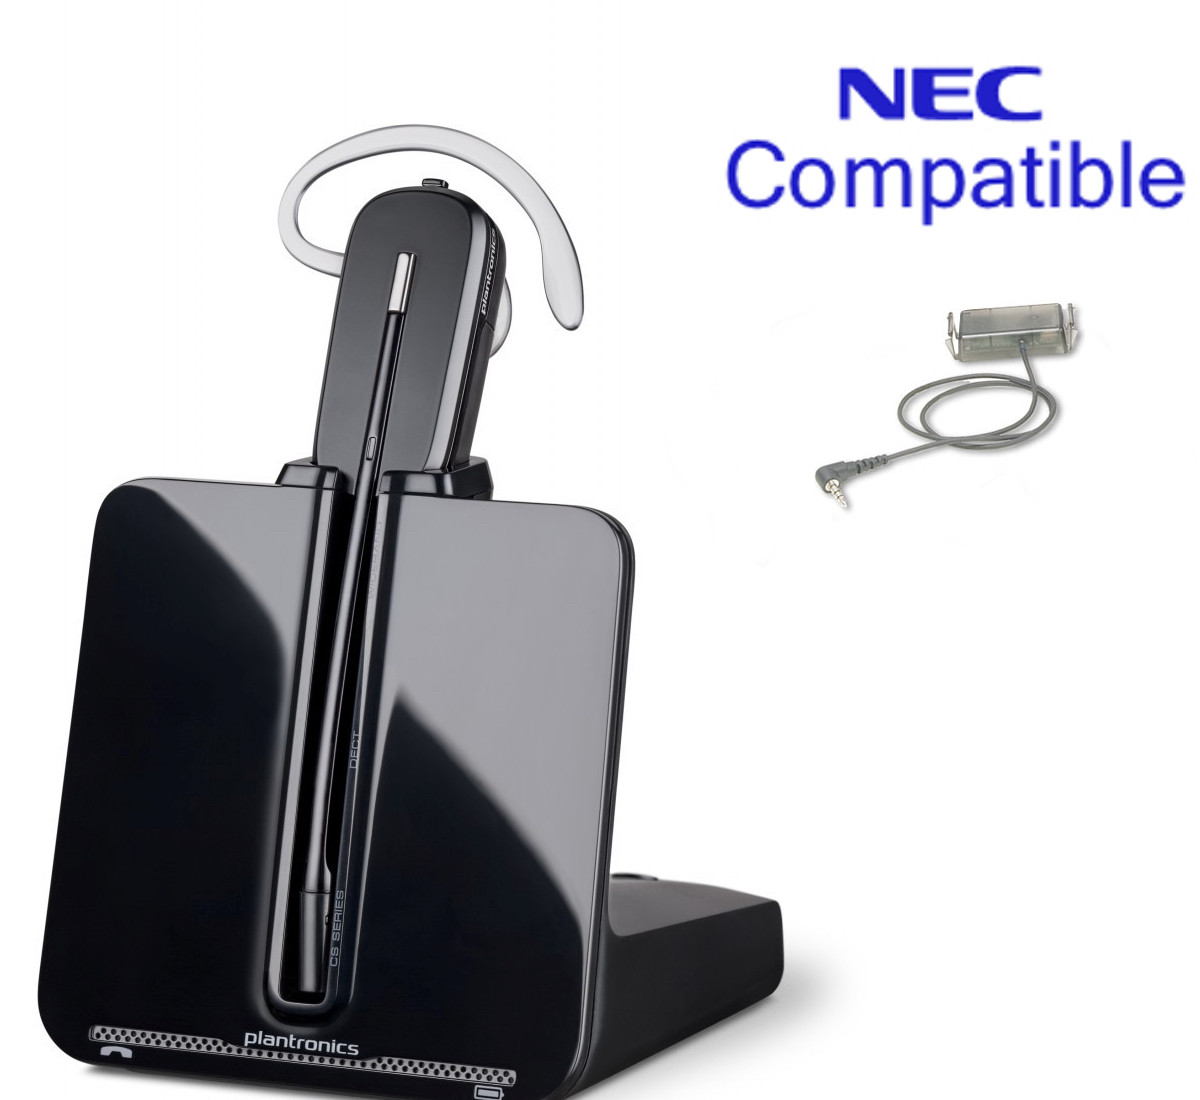 3581644e2a0 NEC Compatible Plantronics Cordless Headset Bundle | CS540 with Electronic  Remote Answerer | NEC SL1100 and DSX 34B phones only (DSX 34B): 1090021,  1090026, ...